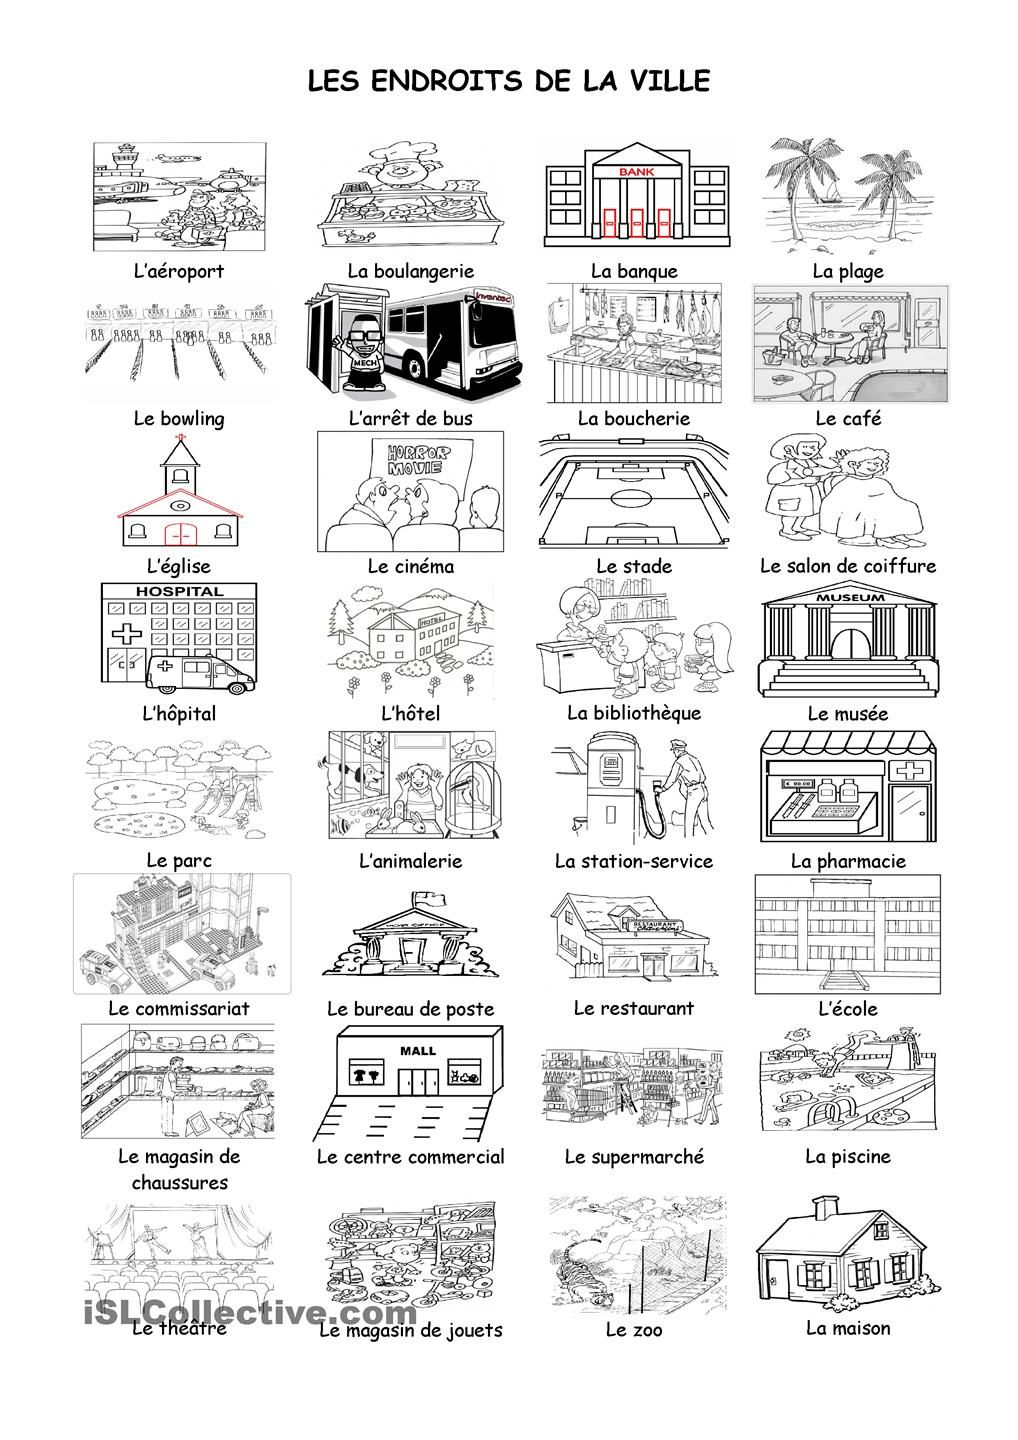 Worksheets Beginner French Worksheets les endroits de la ville french learning pinterest language core frenchfrench classworksheetsdigital